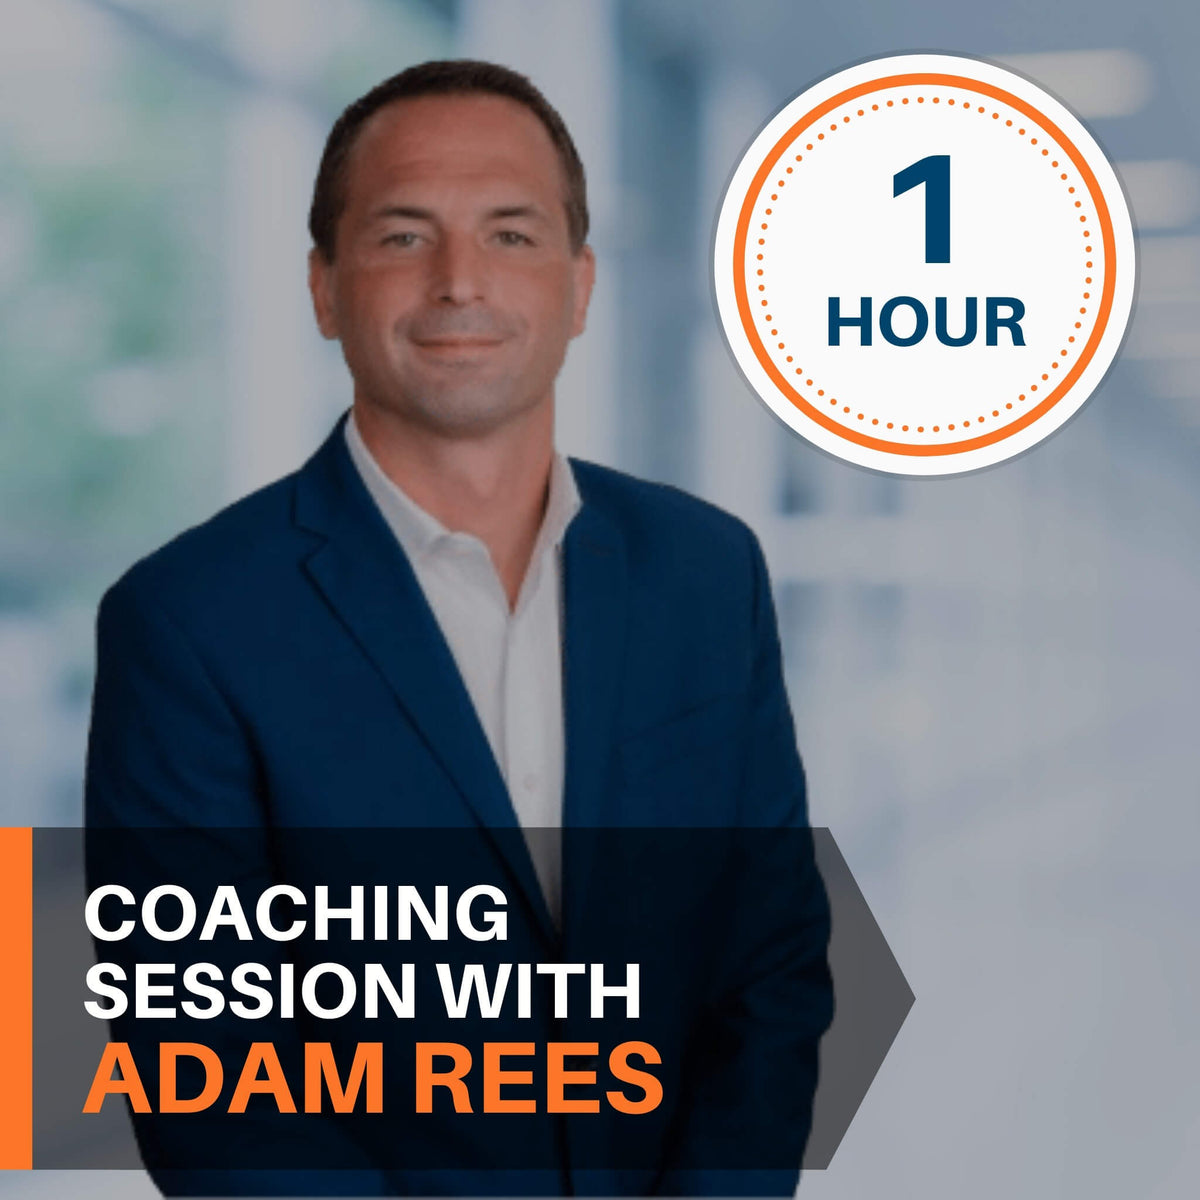 1 hour coaching session with Adam Rees